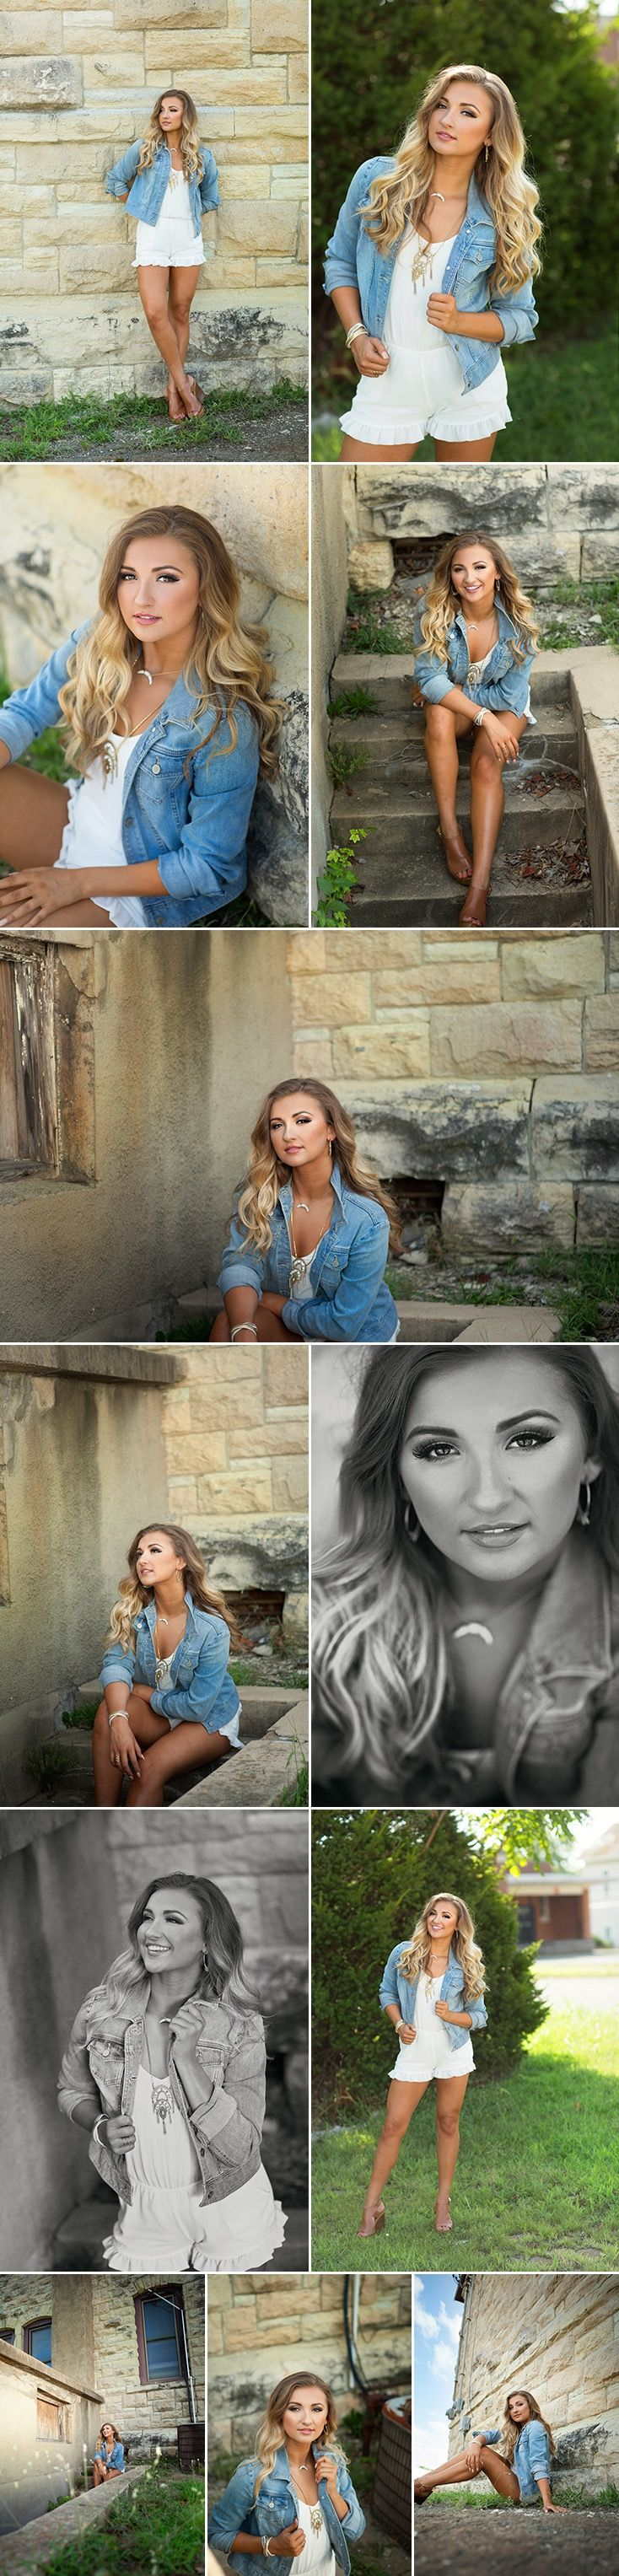 Lauren | d-Squared Designs Edwardsville | Missouri Senior Photography